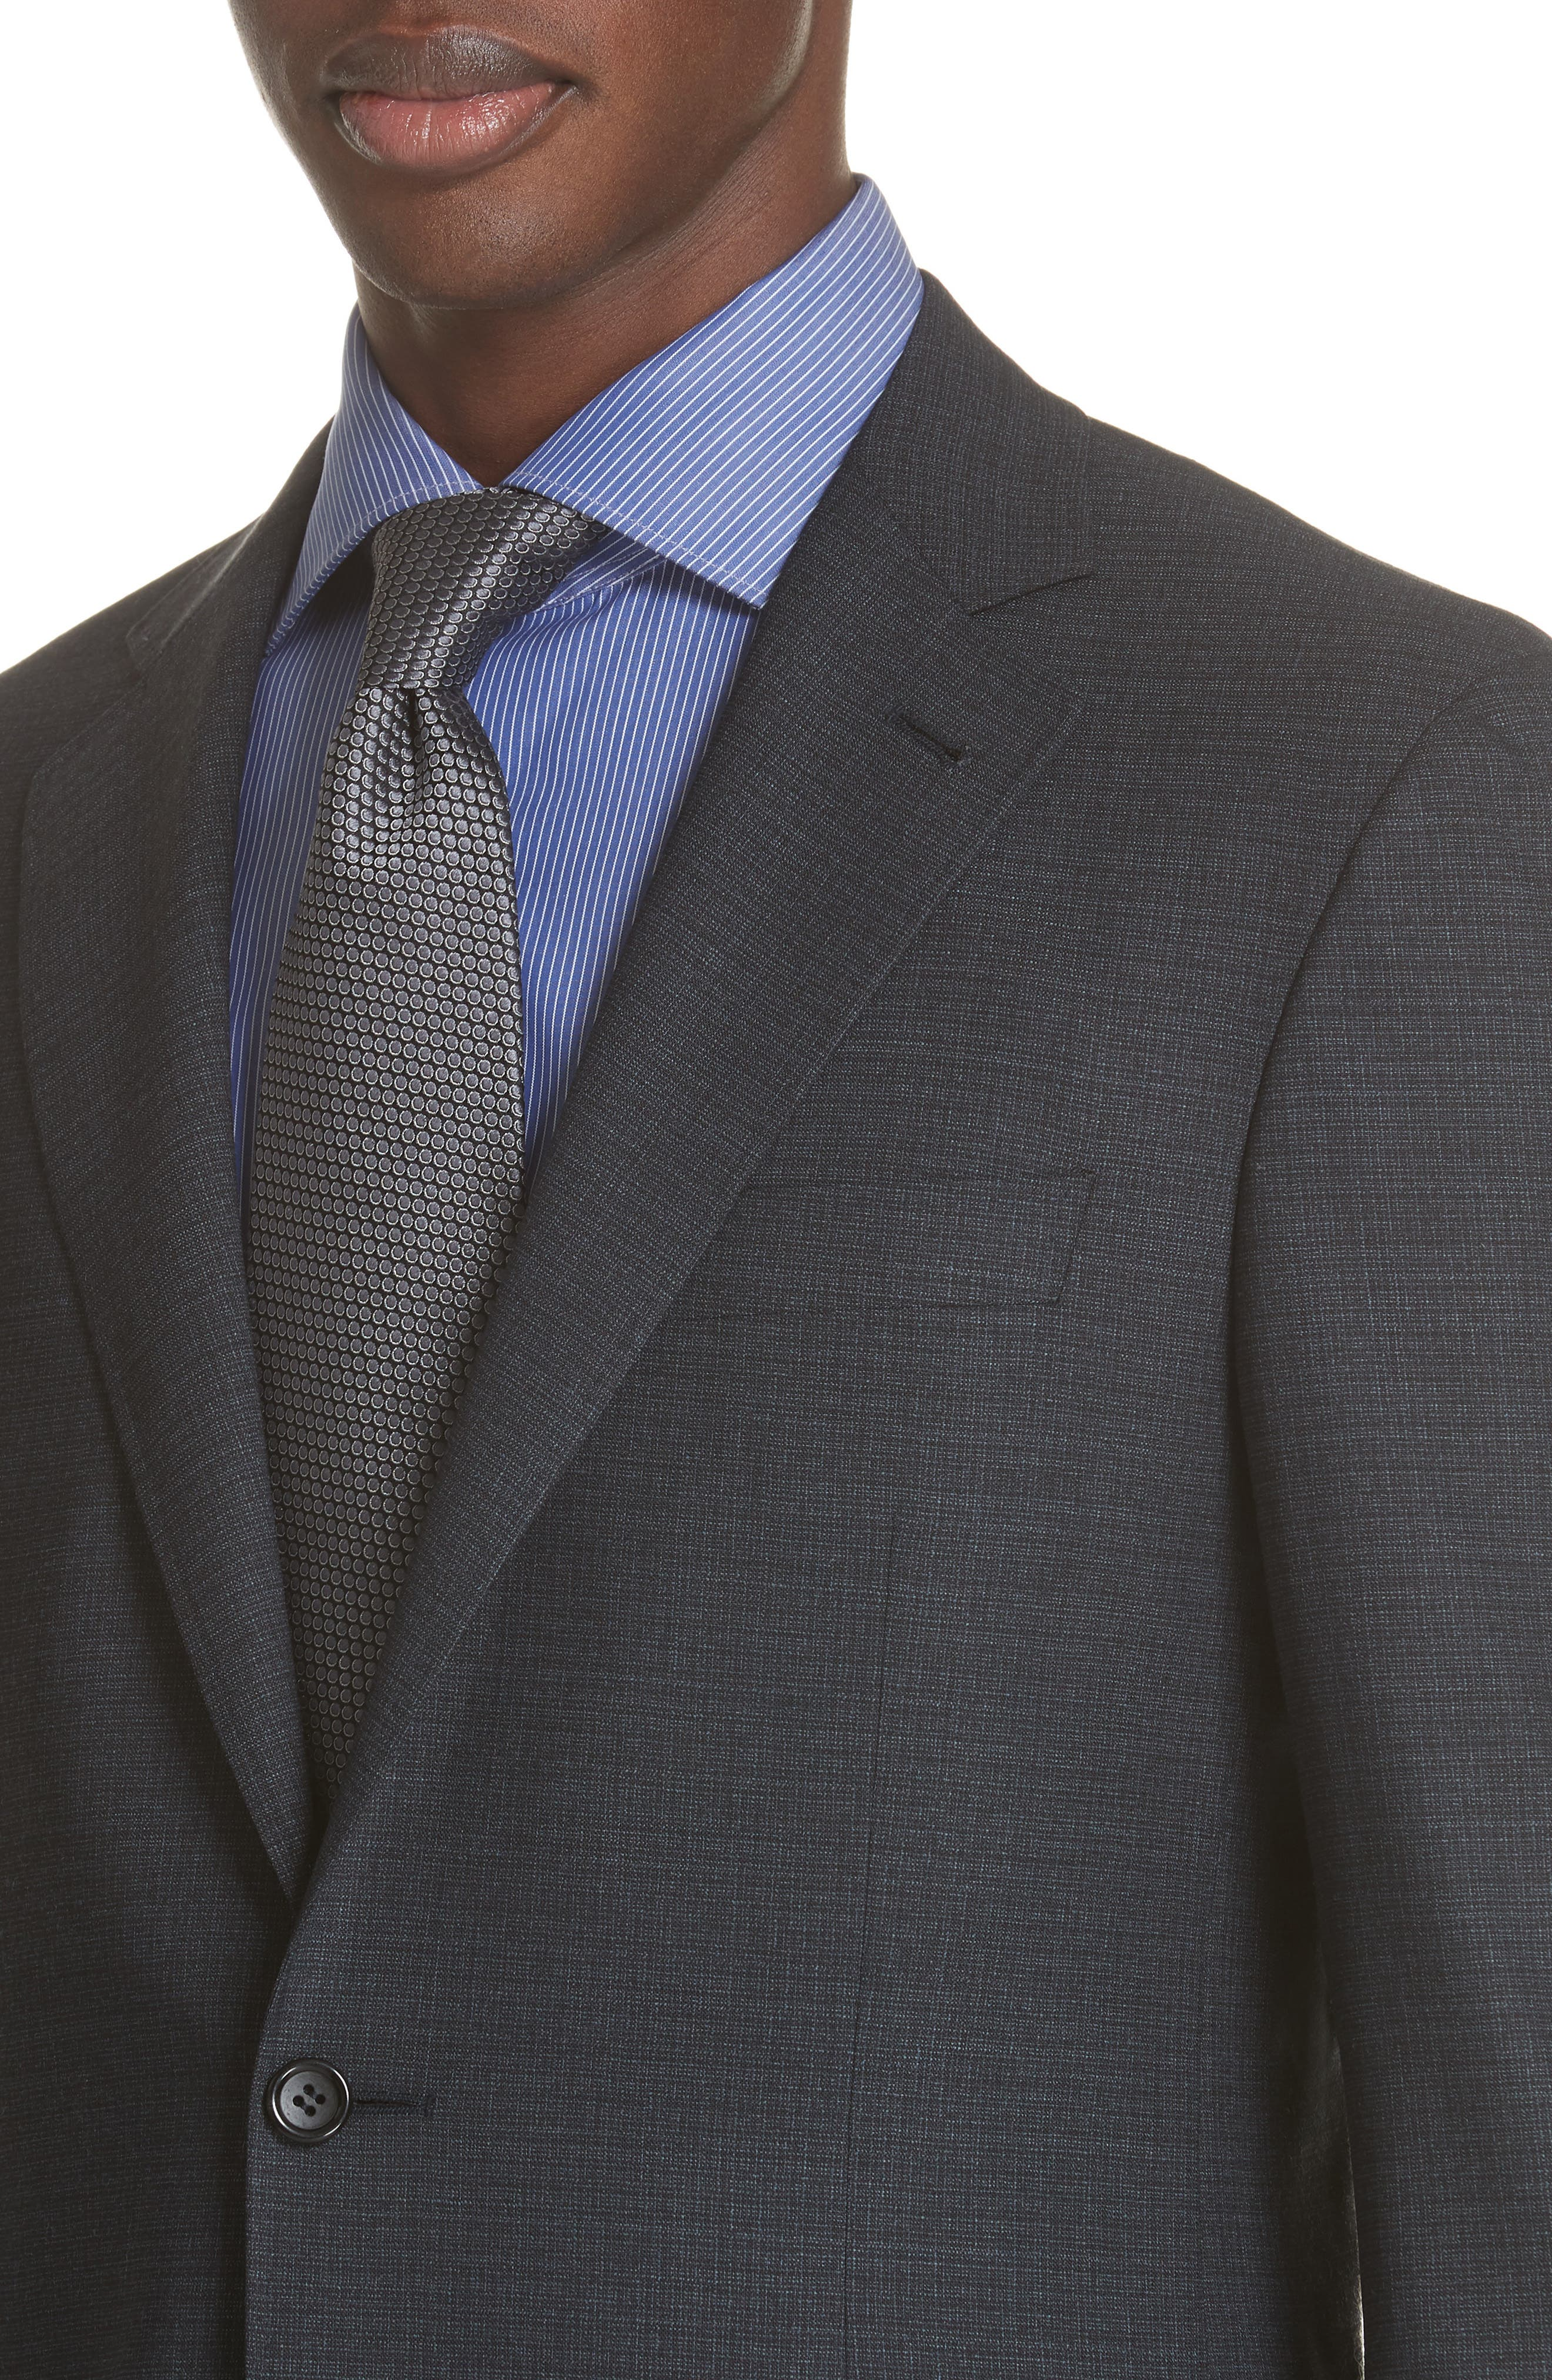 CANALI,                             Classic Fit Stretch Check Wool Suit,                             Alternate thumbnail 4, color,                             400